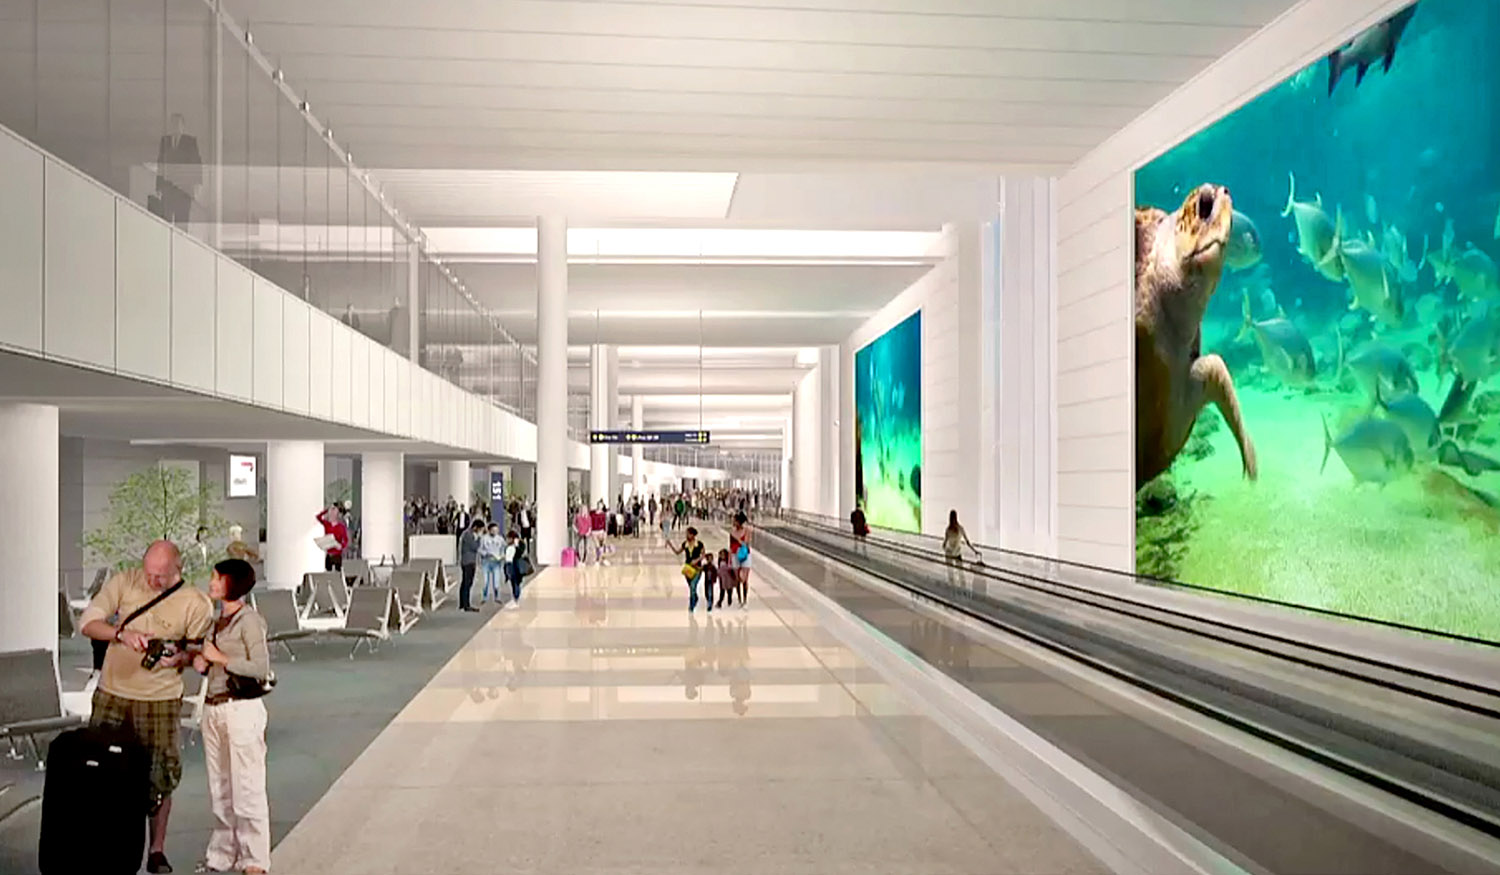 An elevated International Arrivals Corridor provides a welcoming first impression to international passengers. Fentress Architects